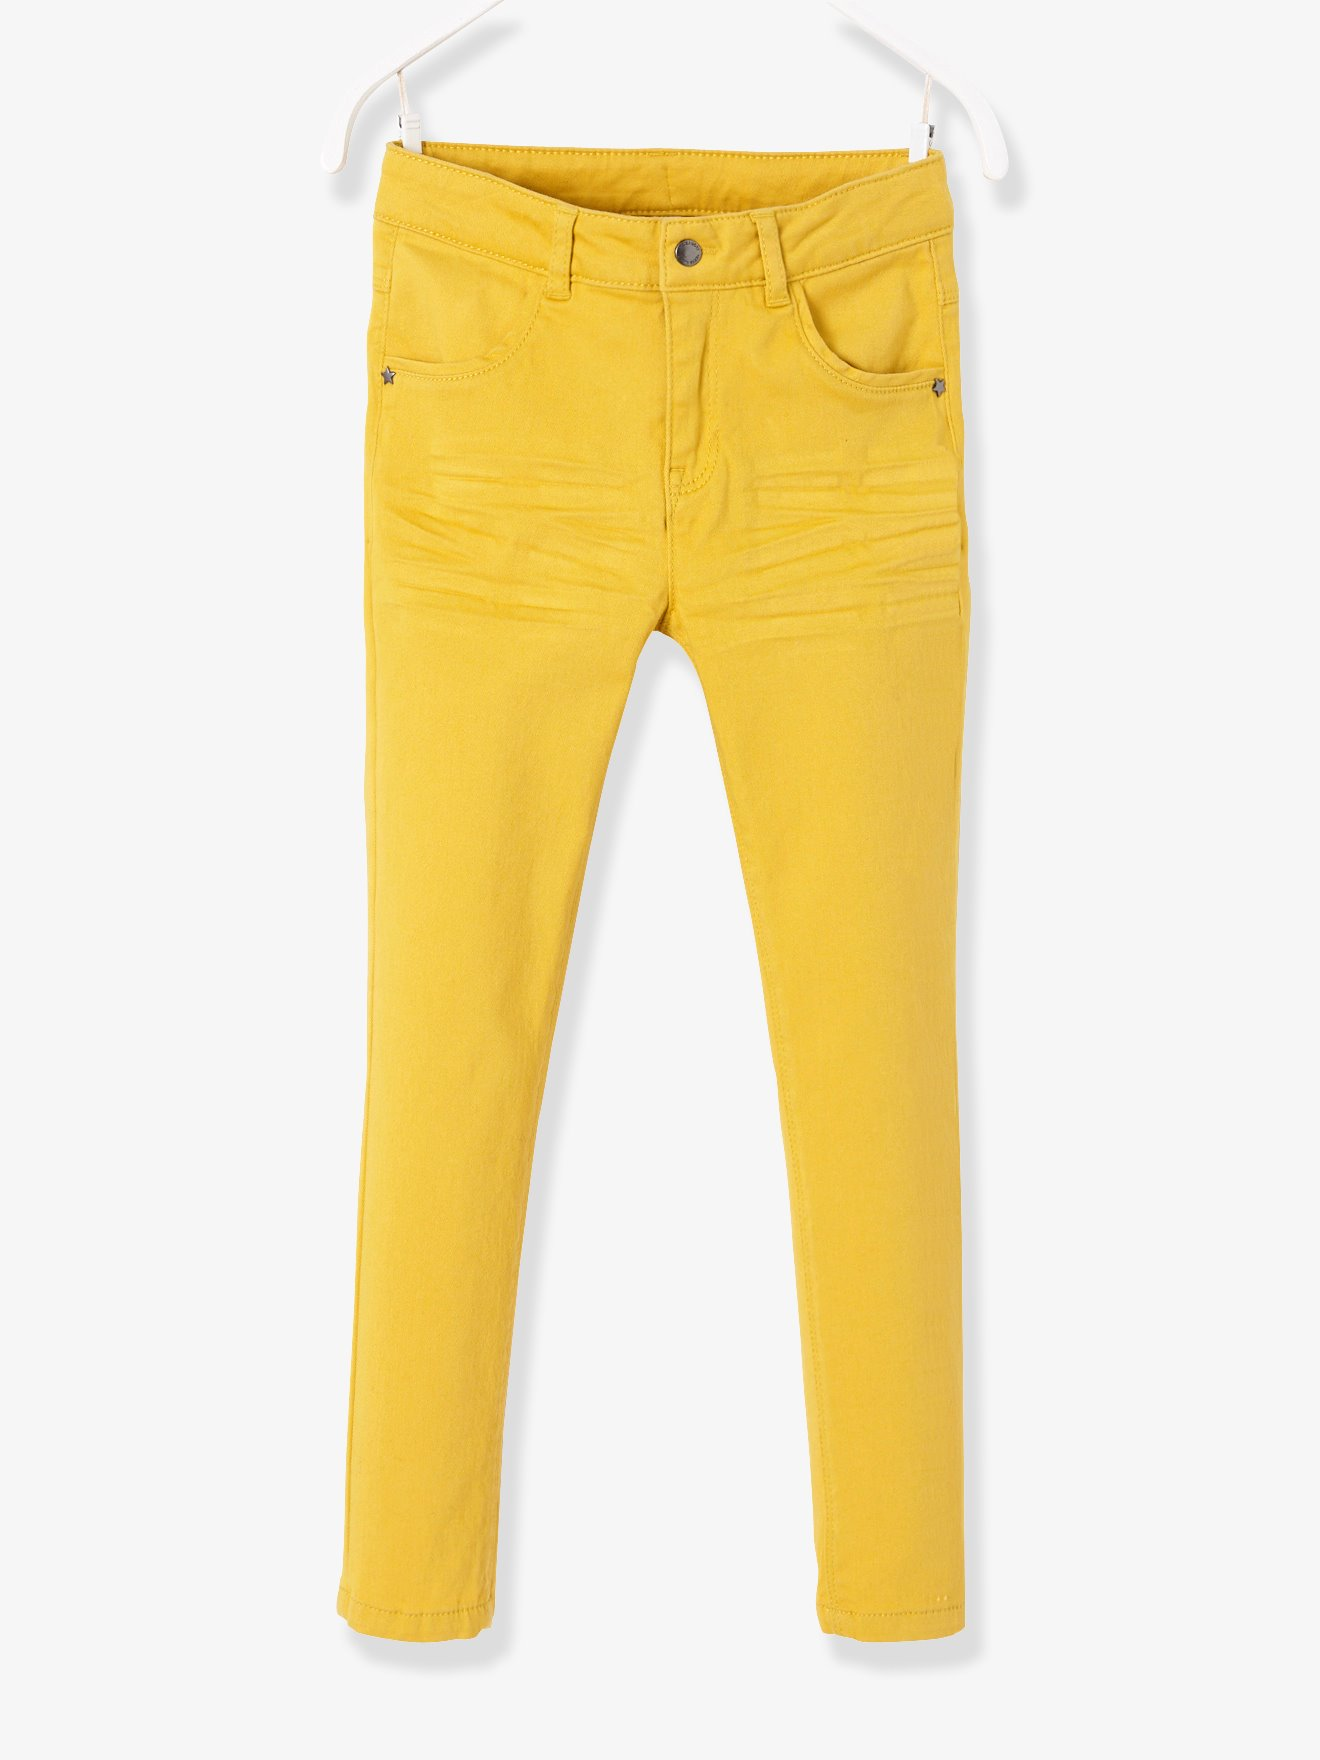 NARROW Hip Slim Trousers for Girls - yellow dark solid, Girls